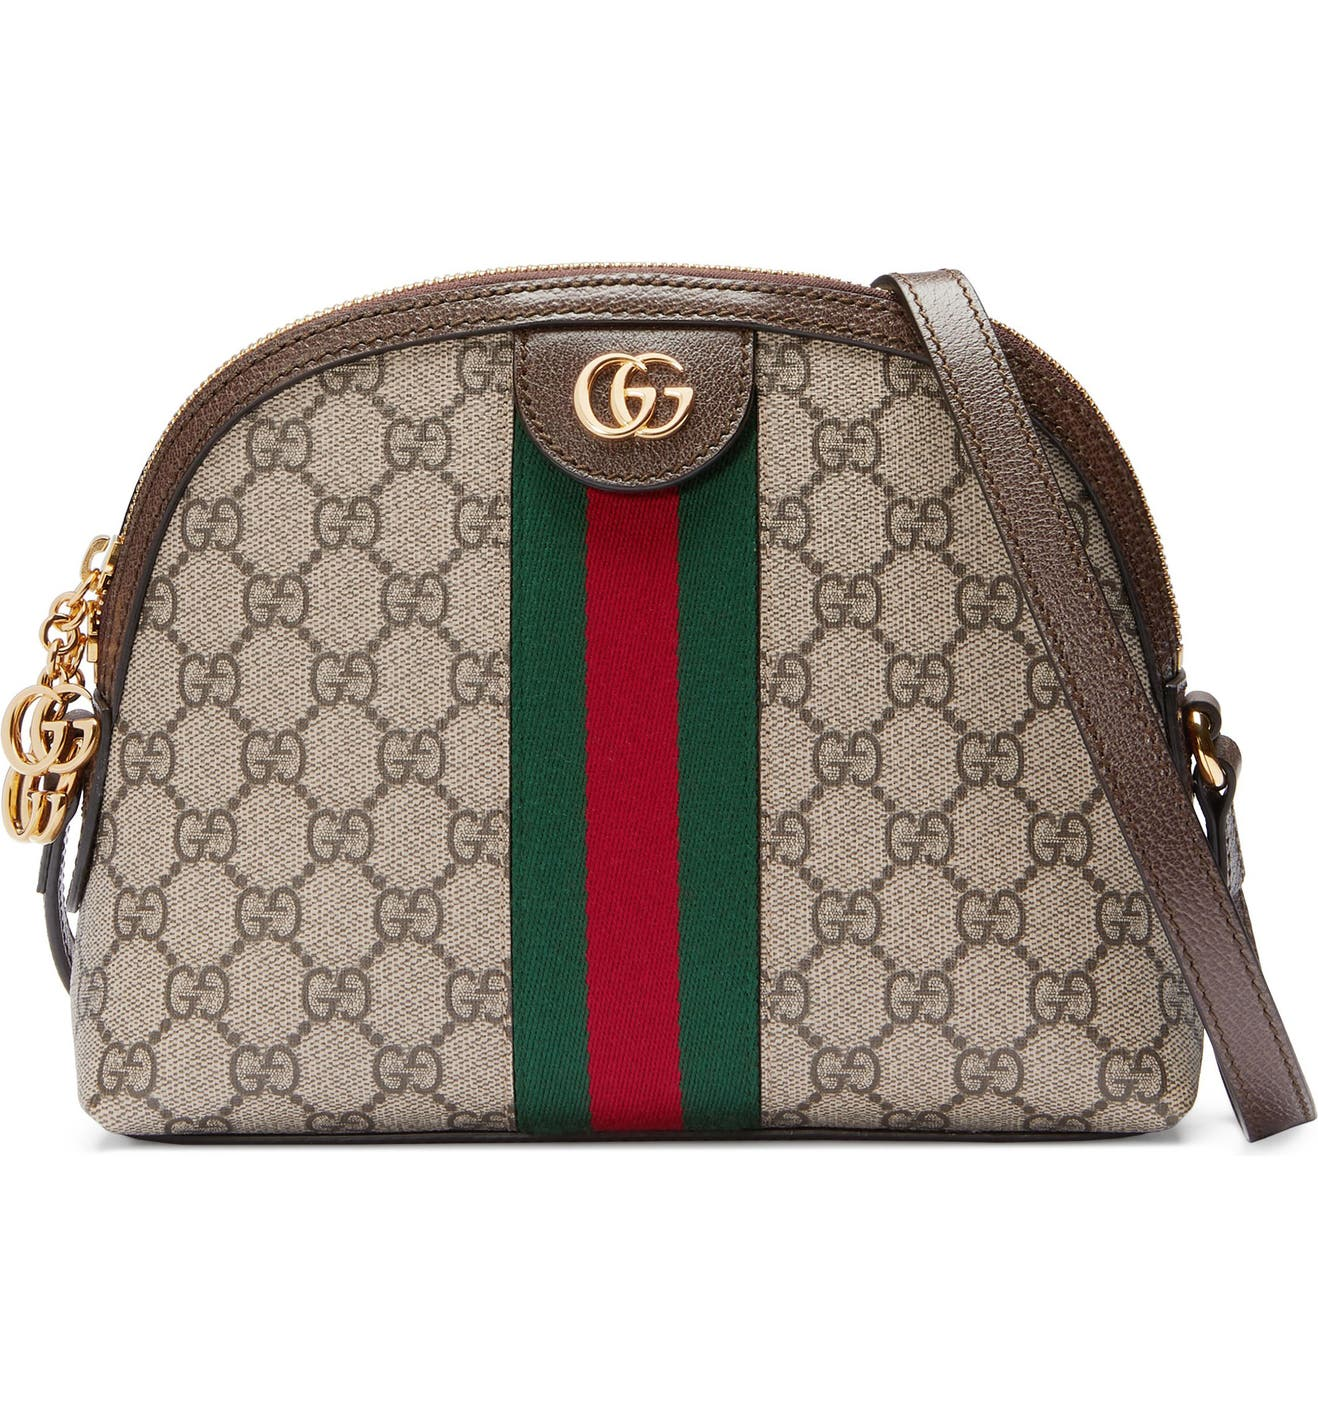 6a97f60ac955 Gucci GG Supreme Canvas Shoulder Bag | Nordstrom